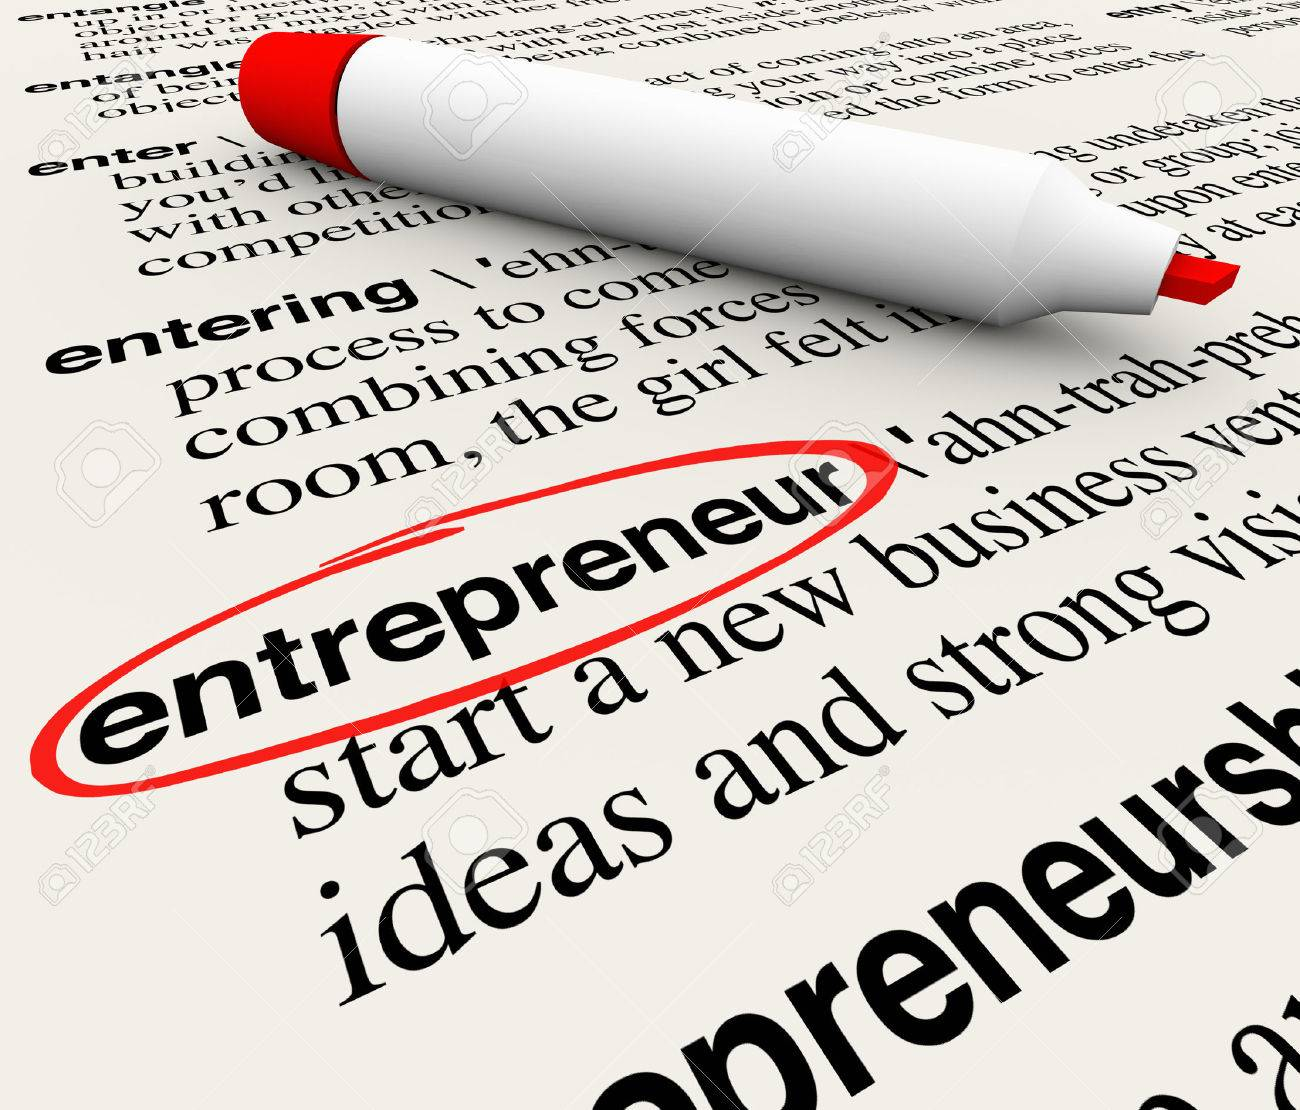 entrepreneur word circled with dictionary definition to illustrate